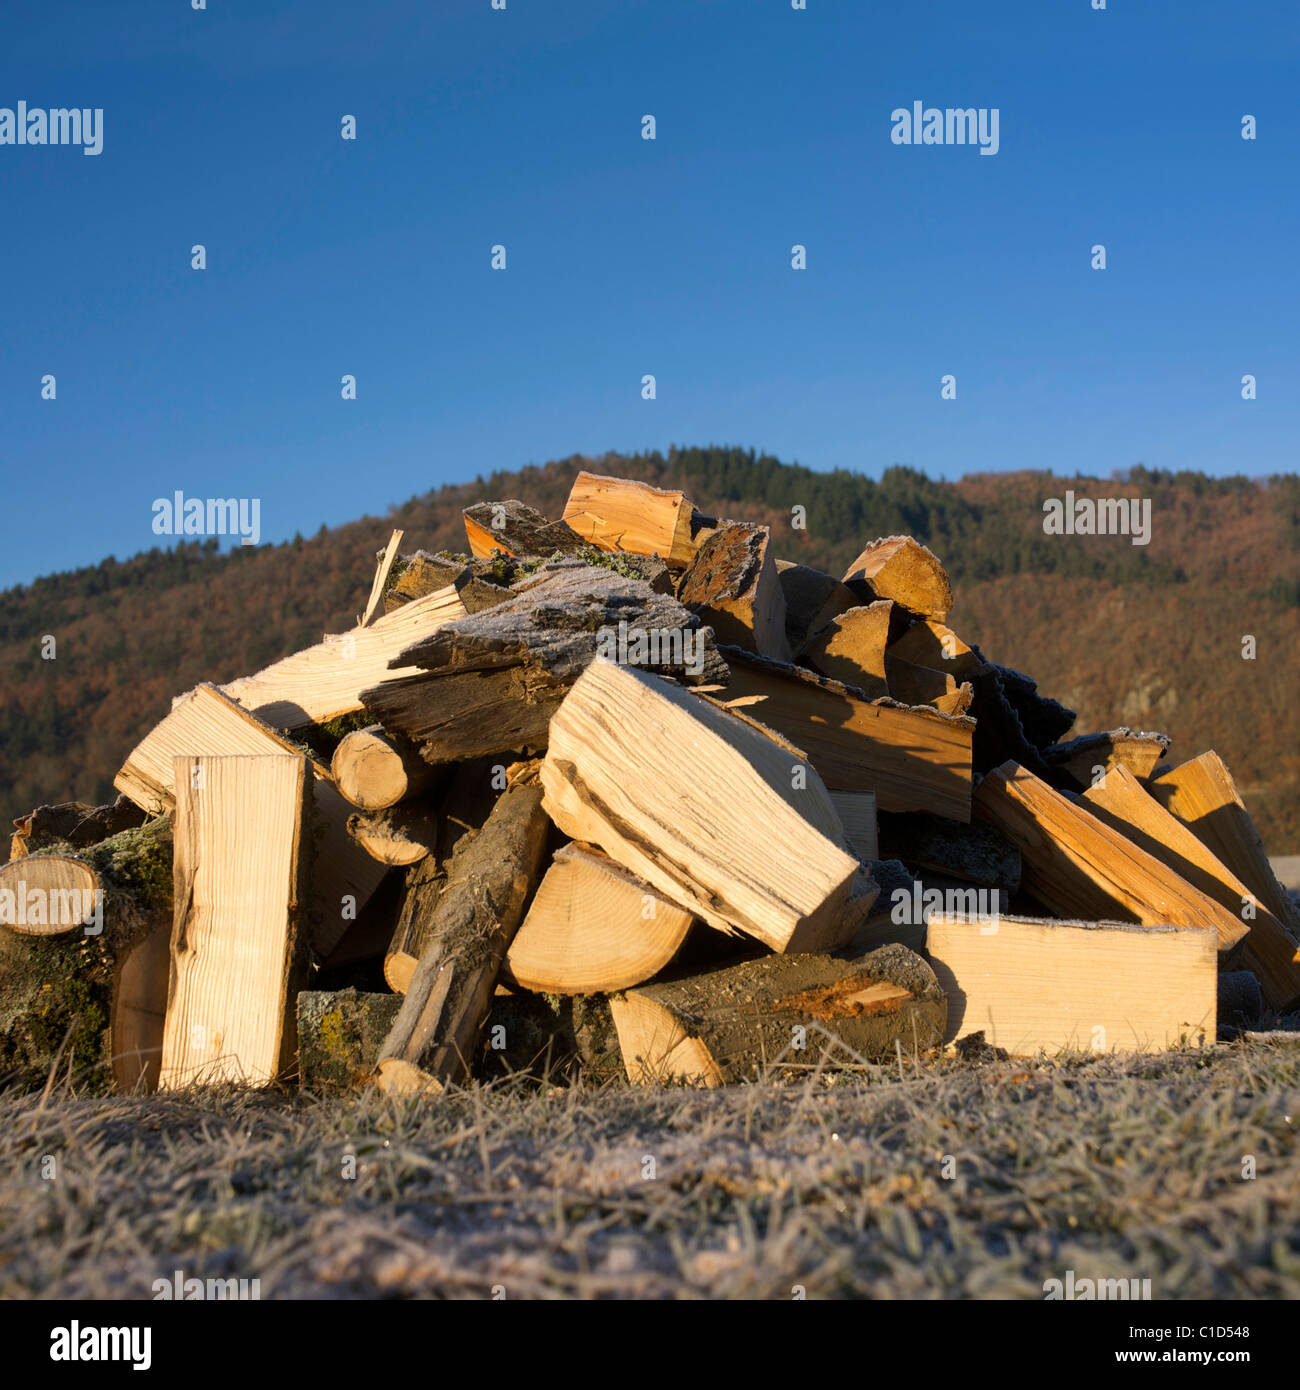 Stack of wood logs outside - Stock Image